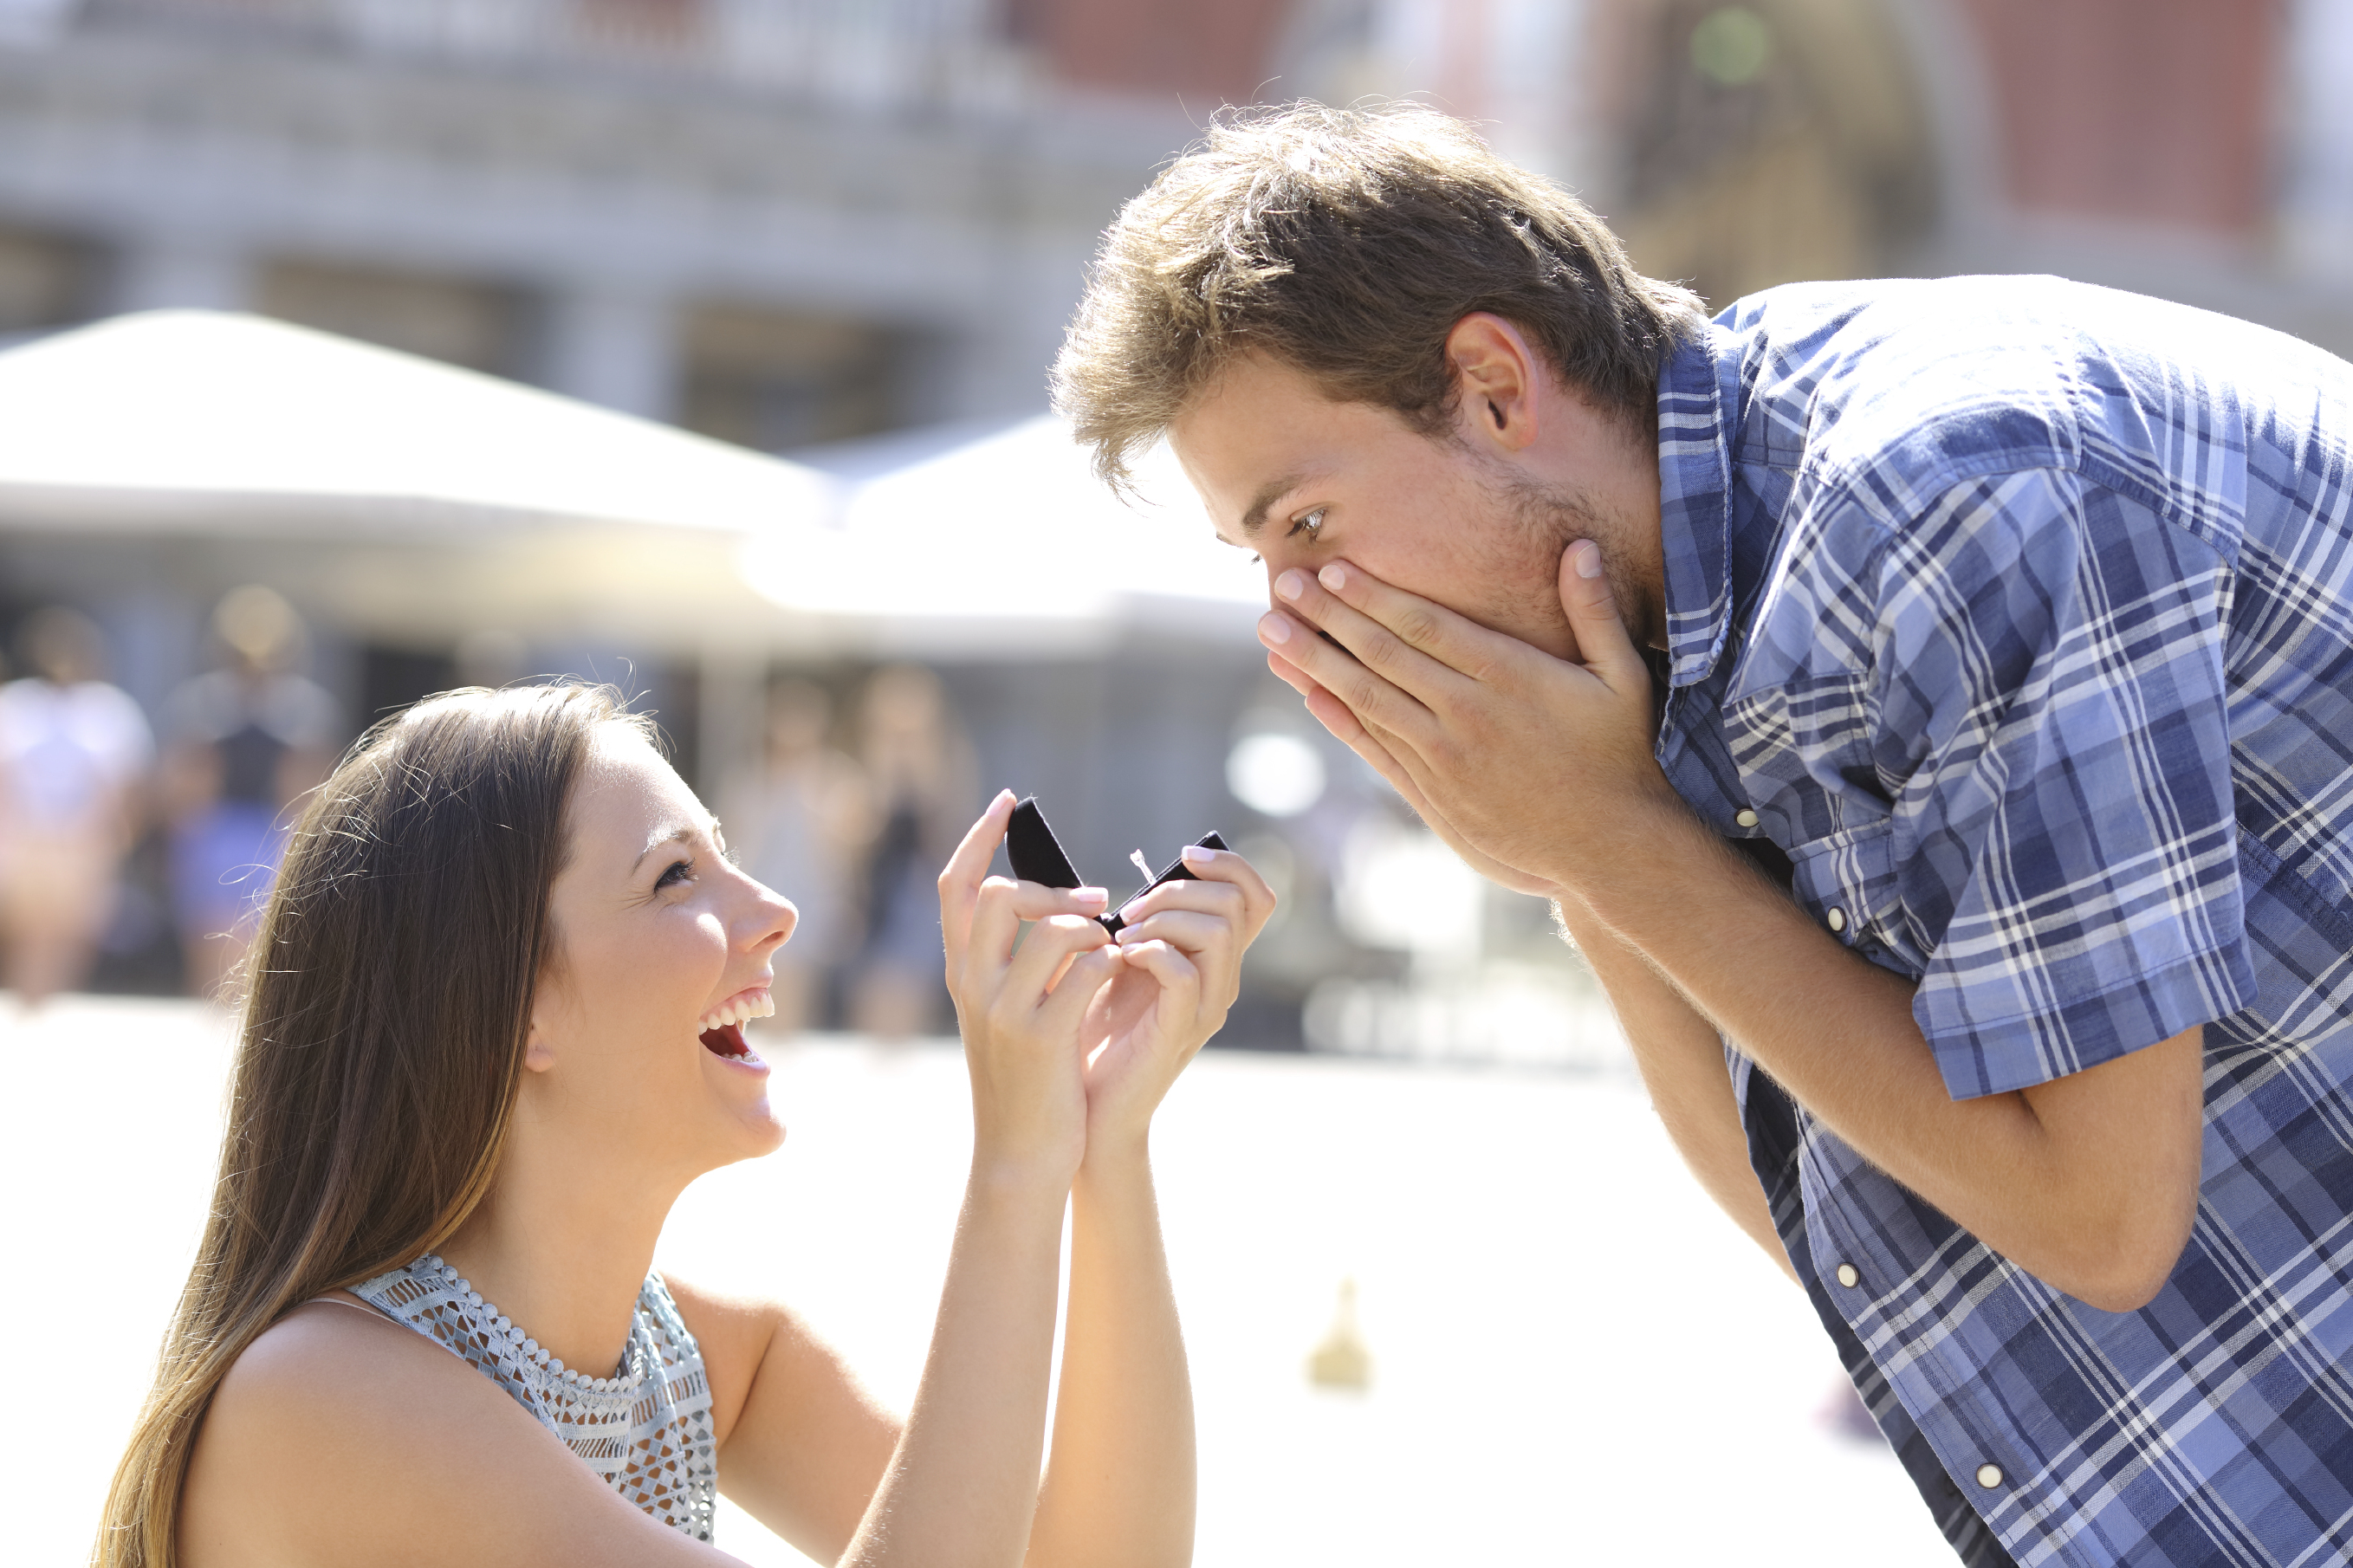 It's a leap year so women will be proposing to men, according to tradition (AntonioGuillem)